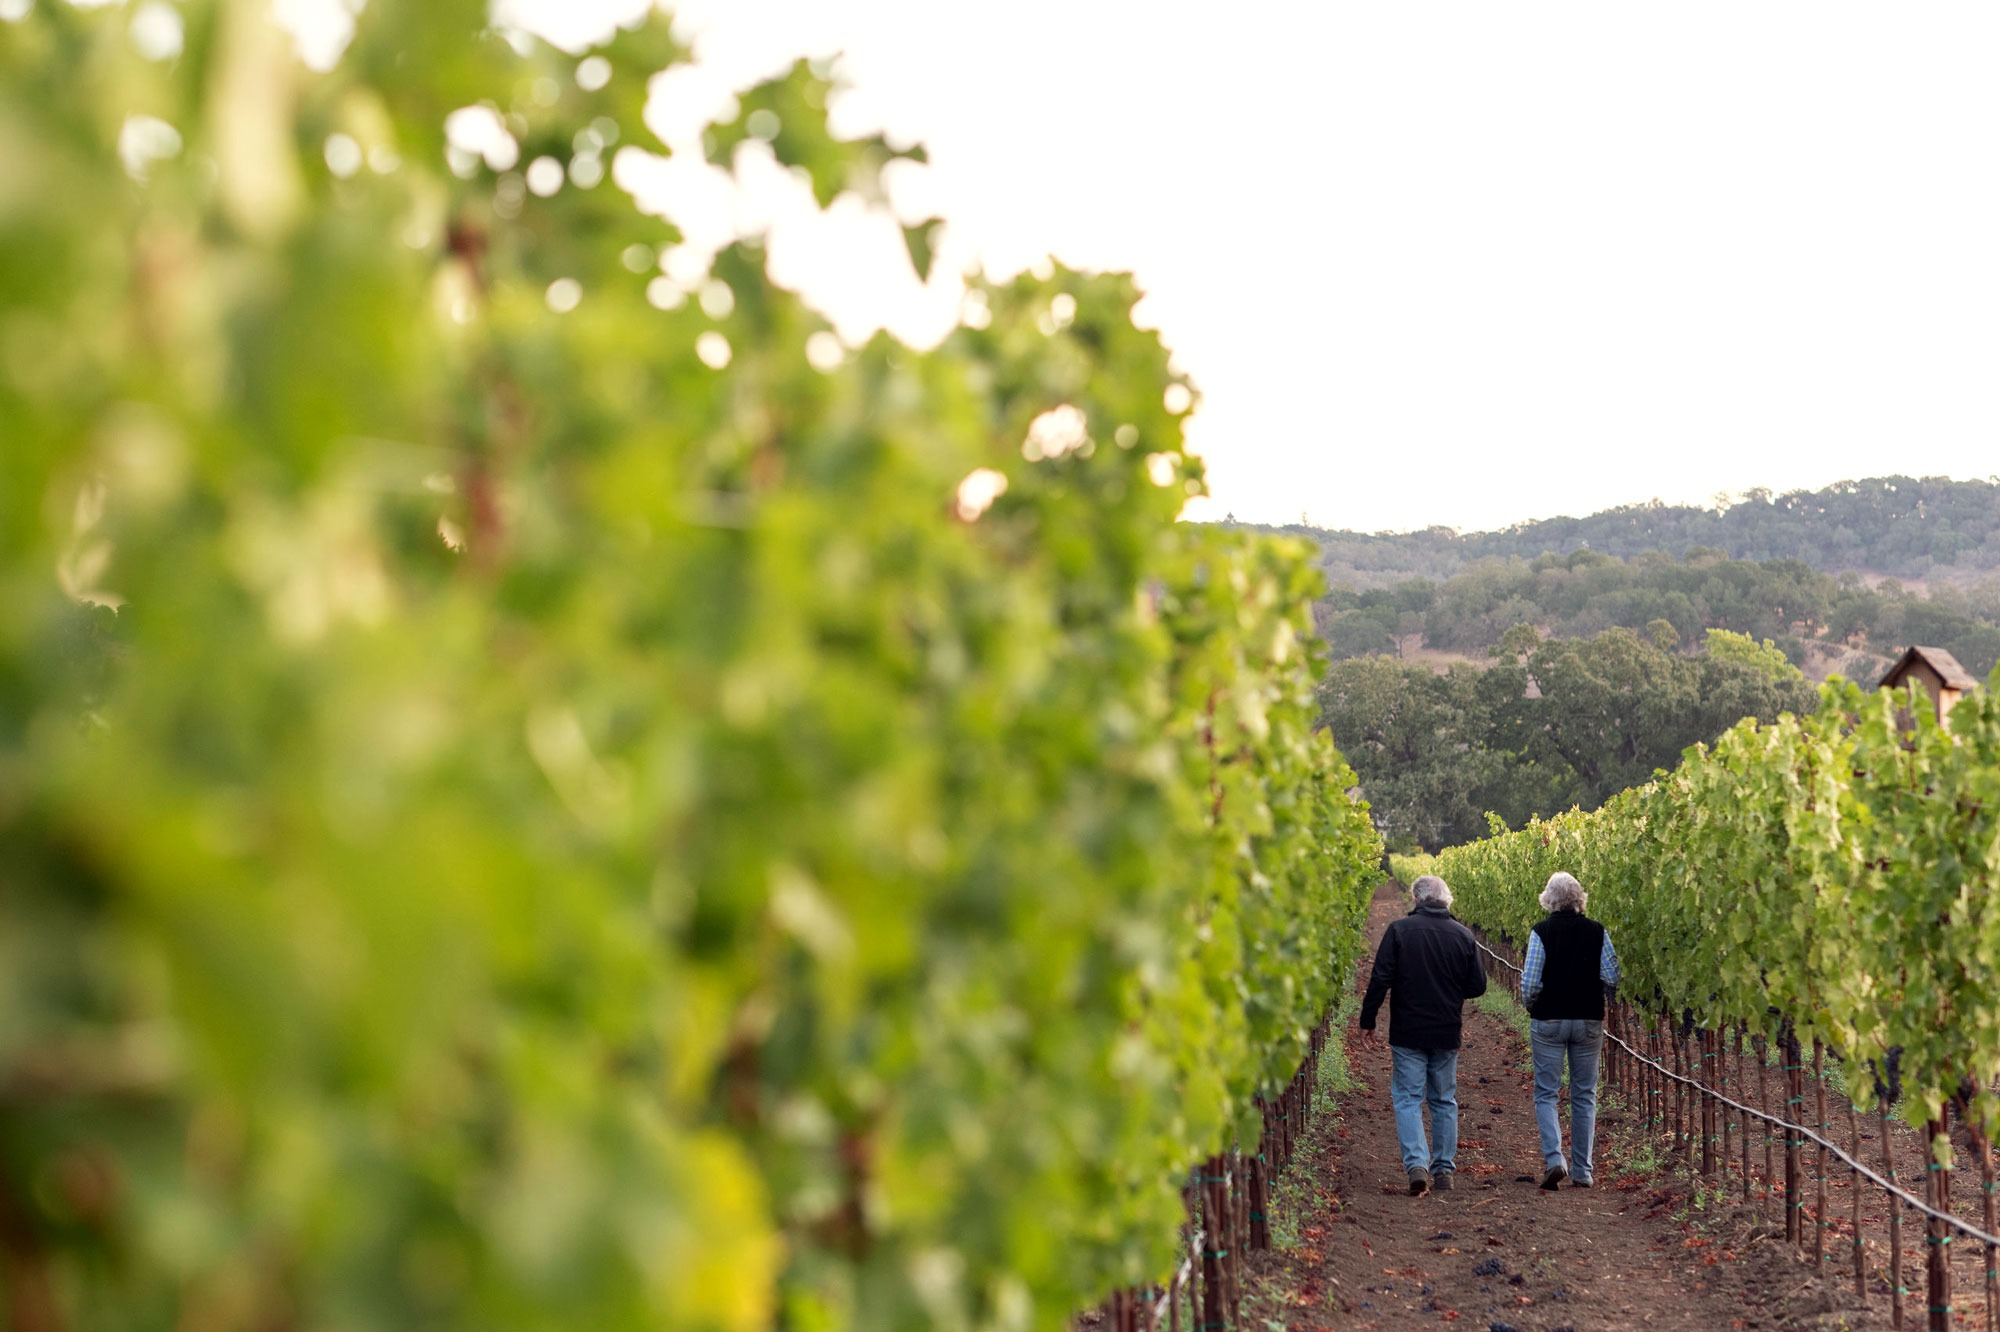 Bart walking through the vineyard at M-Bar Ranch with proprietor Liz Moffitt. Photo by JH Hayes